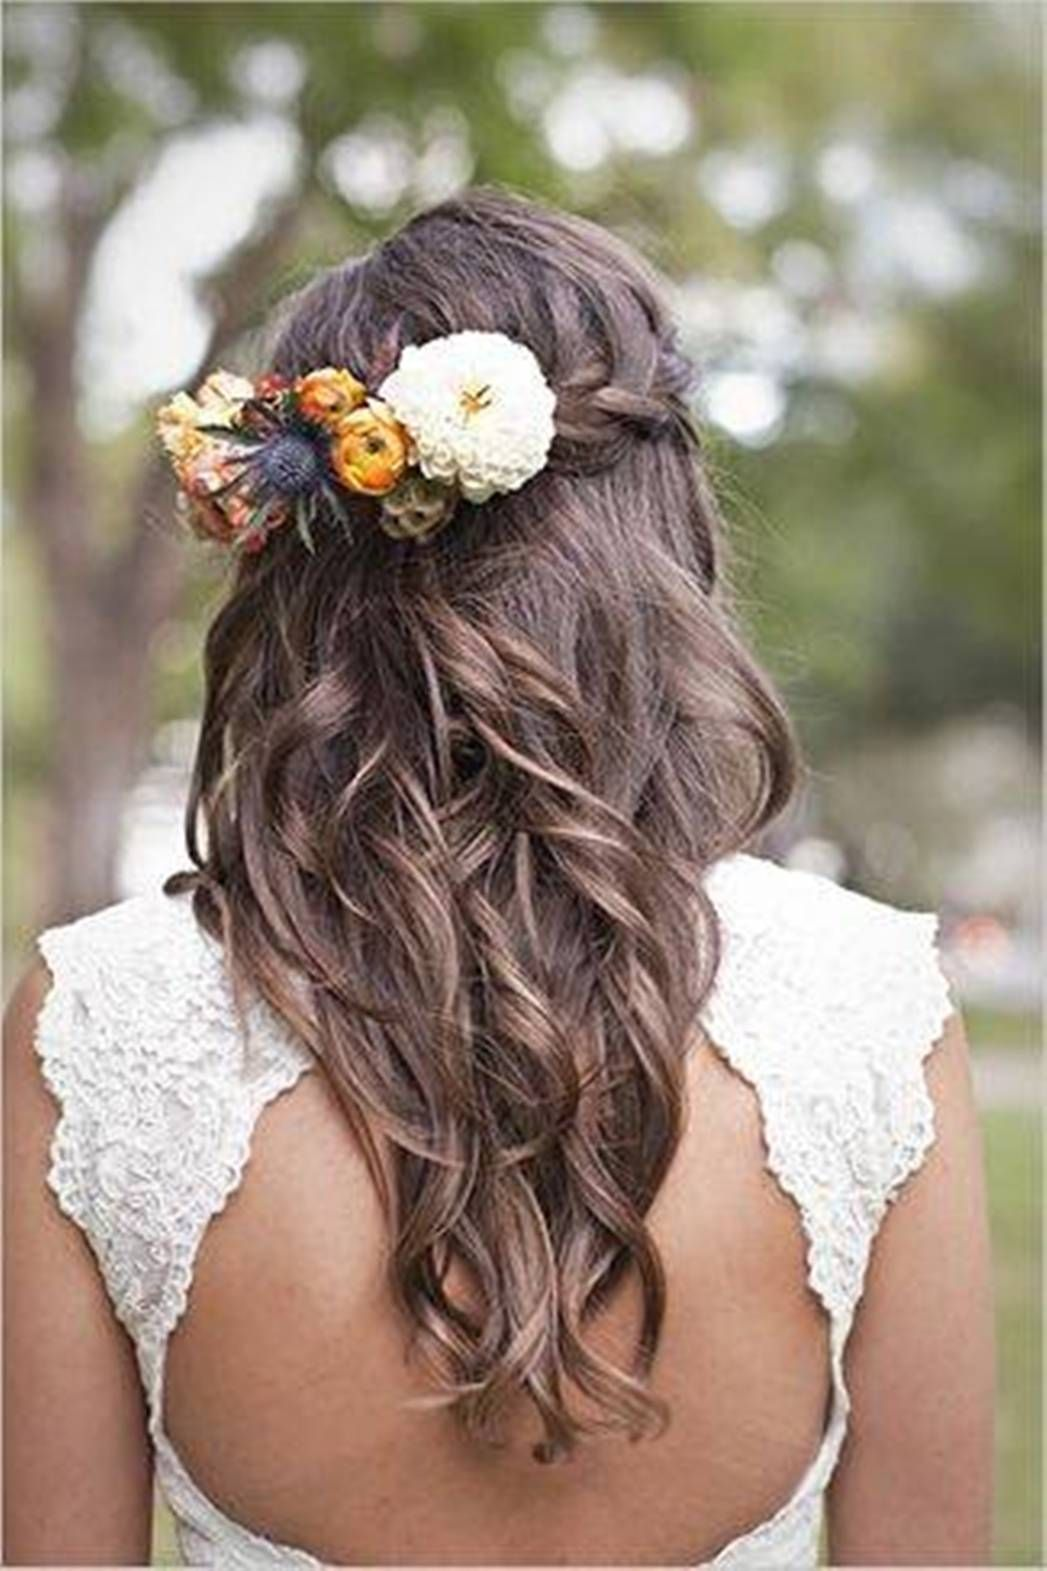 wedding hairstyles for long hair with flowers braid - only